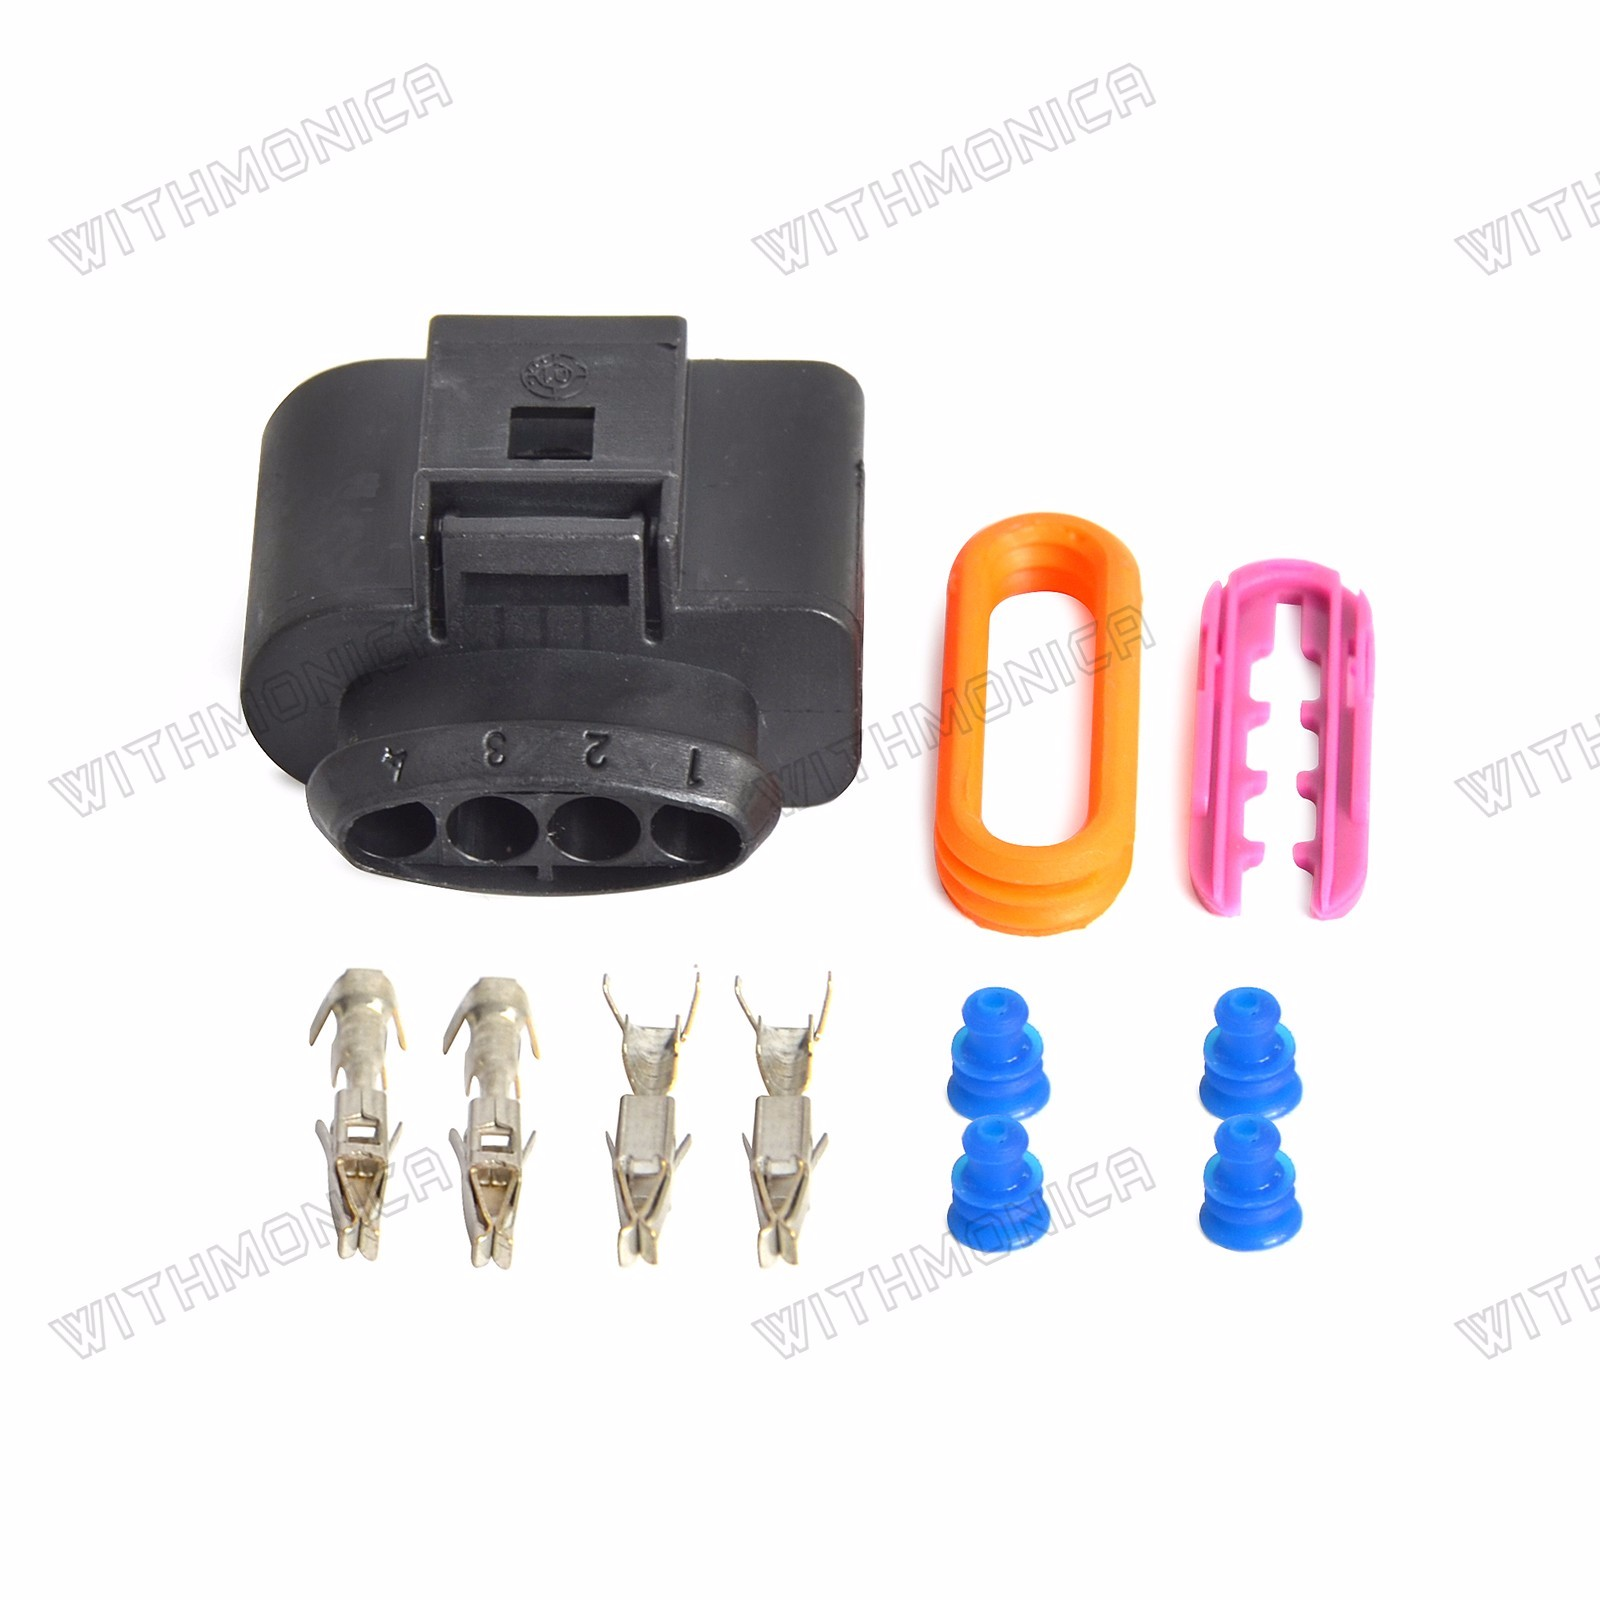 Harness Connector Repair Wire Center Mopar Wiring Connectors Ignition Coil Kit For Audi A4 A6 Vw Rh Ebay Com Bmw Gm